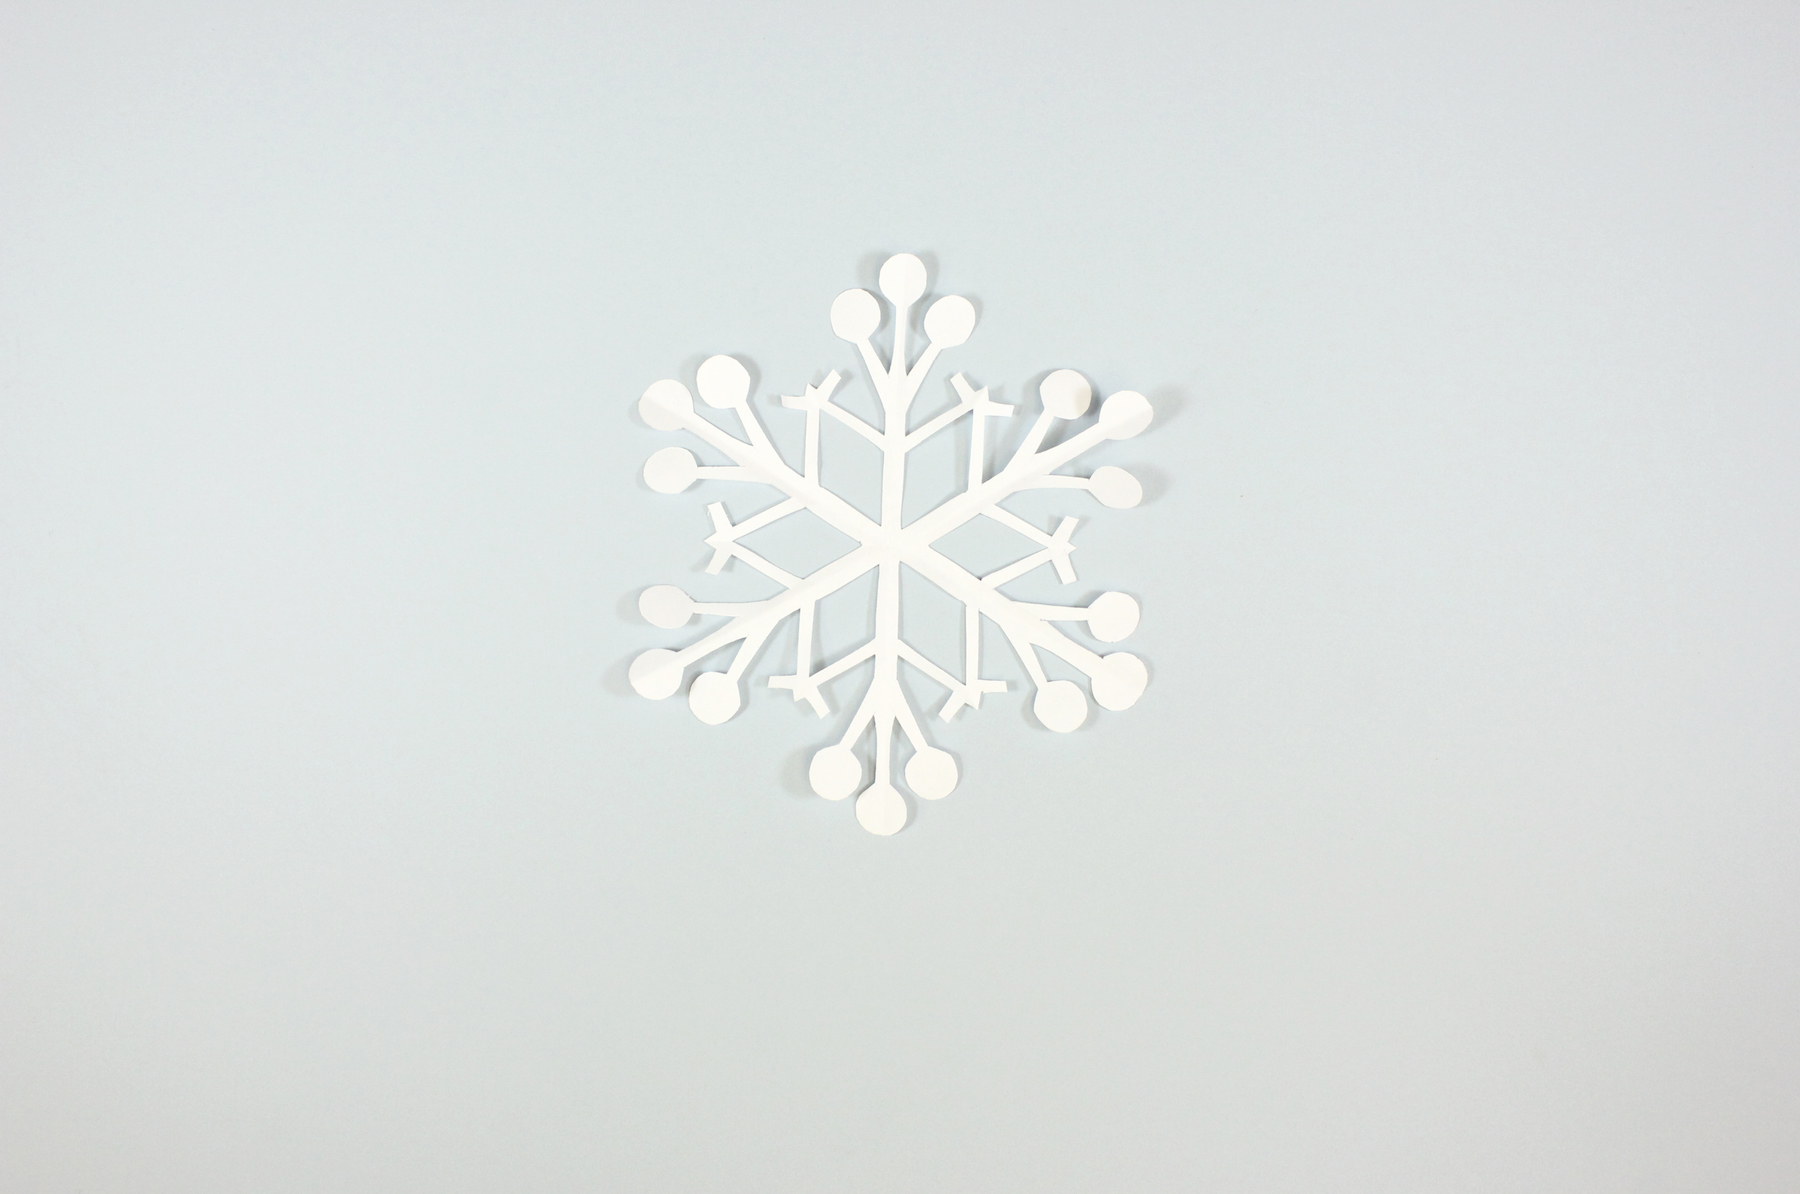 finished paper snowflake